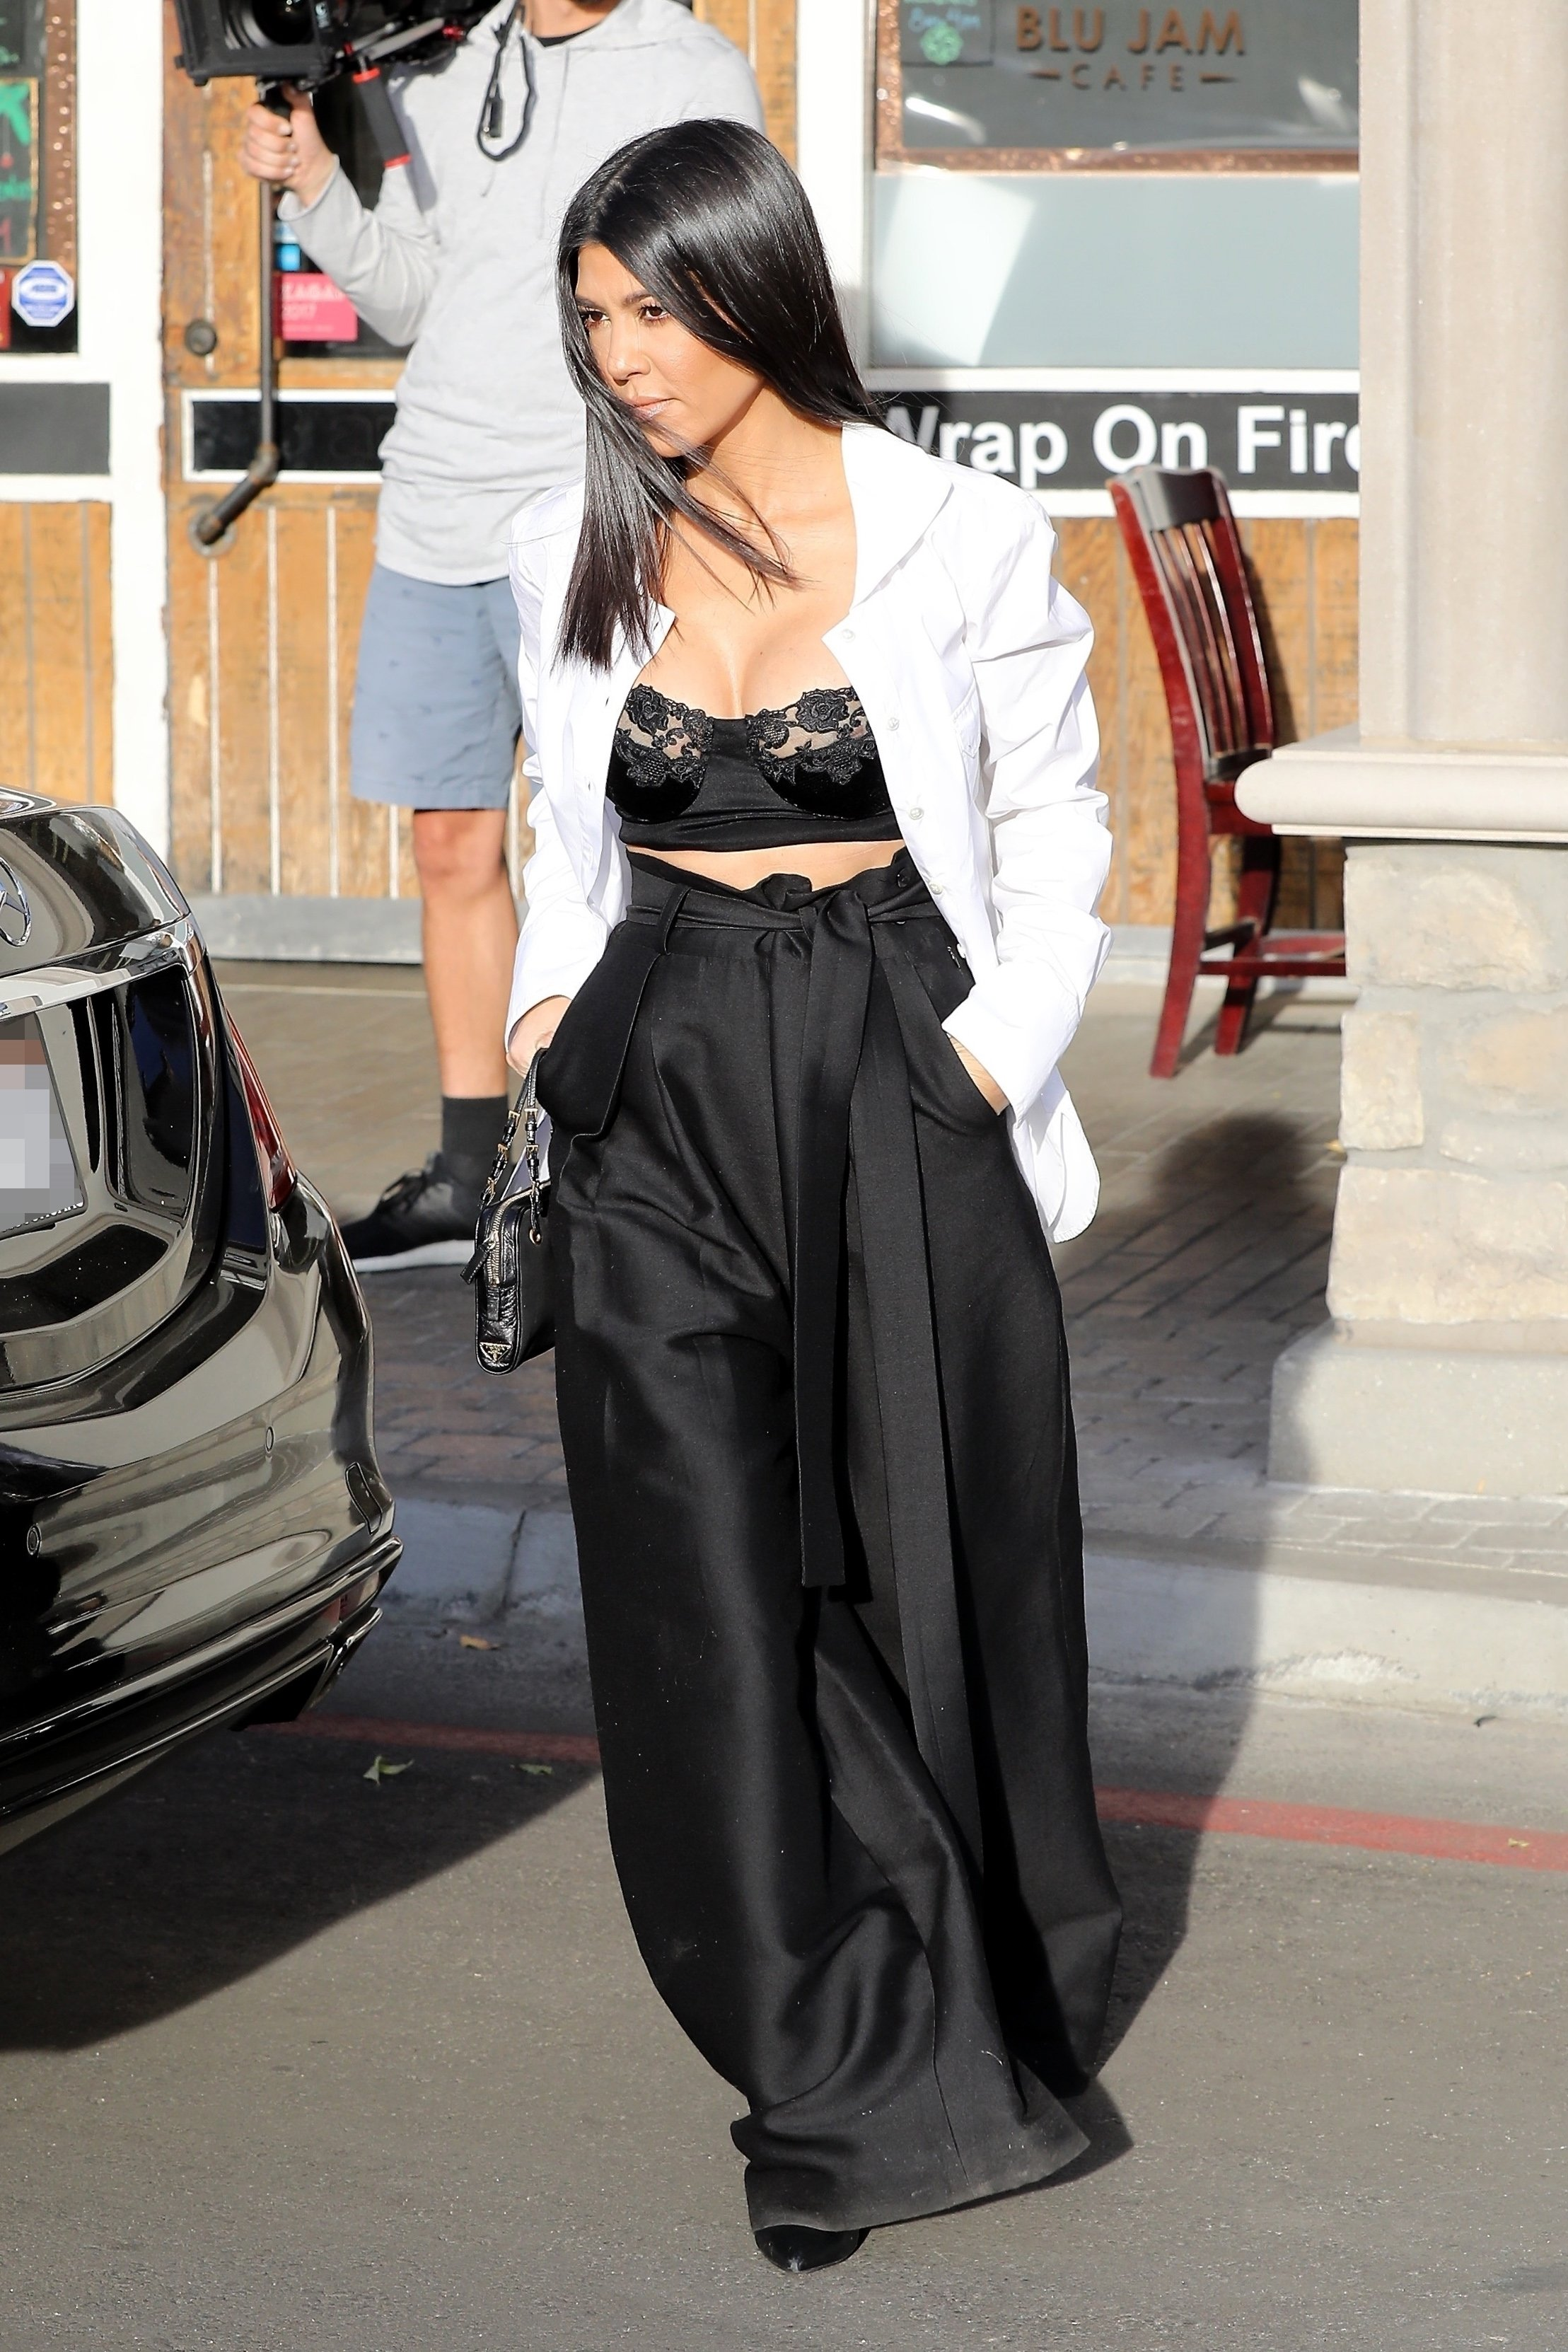 Calabasas, CA  - Kendall Jenner leaves Blu Jam Cafe after meeting with sister Kourtney Kardashian and her daughter Penelope along with Larsa Pippen.  The ladies had a